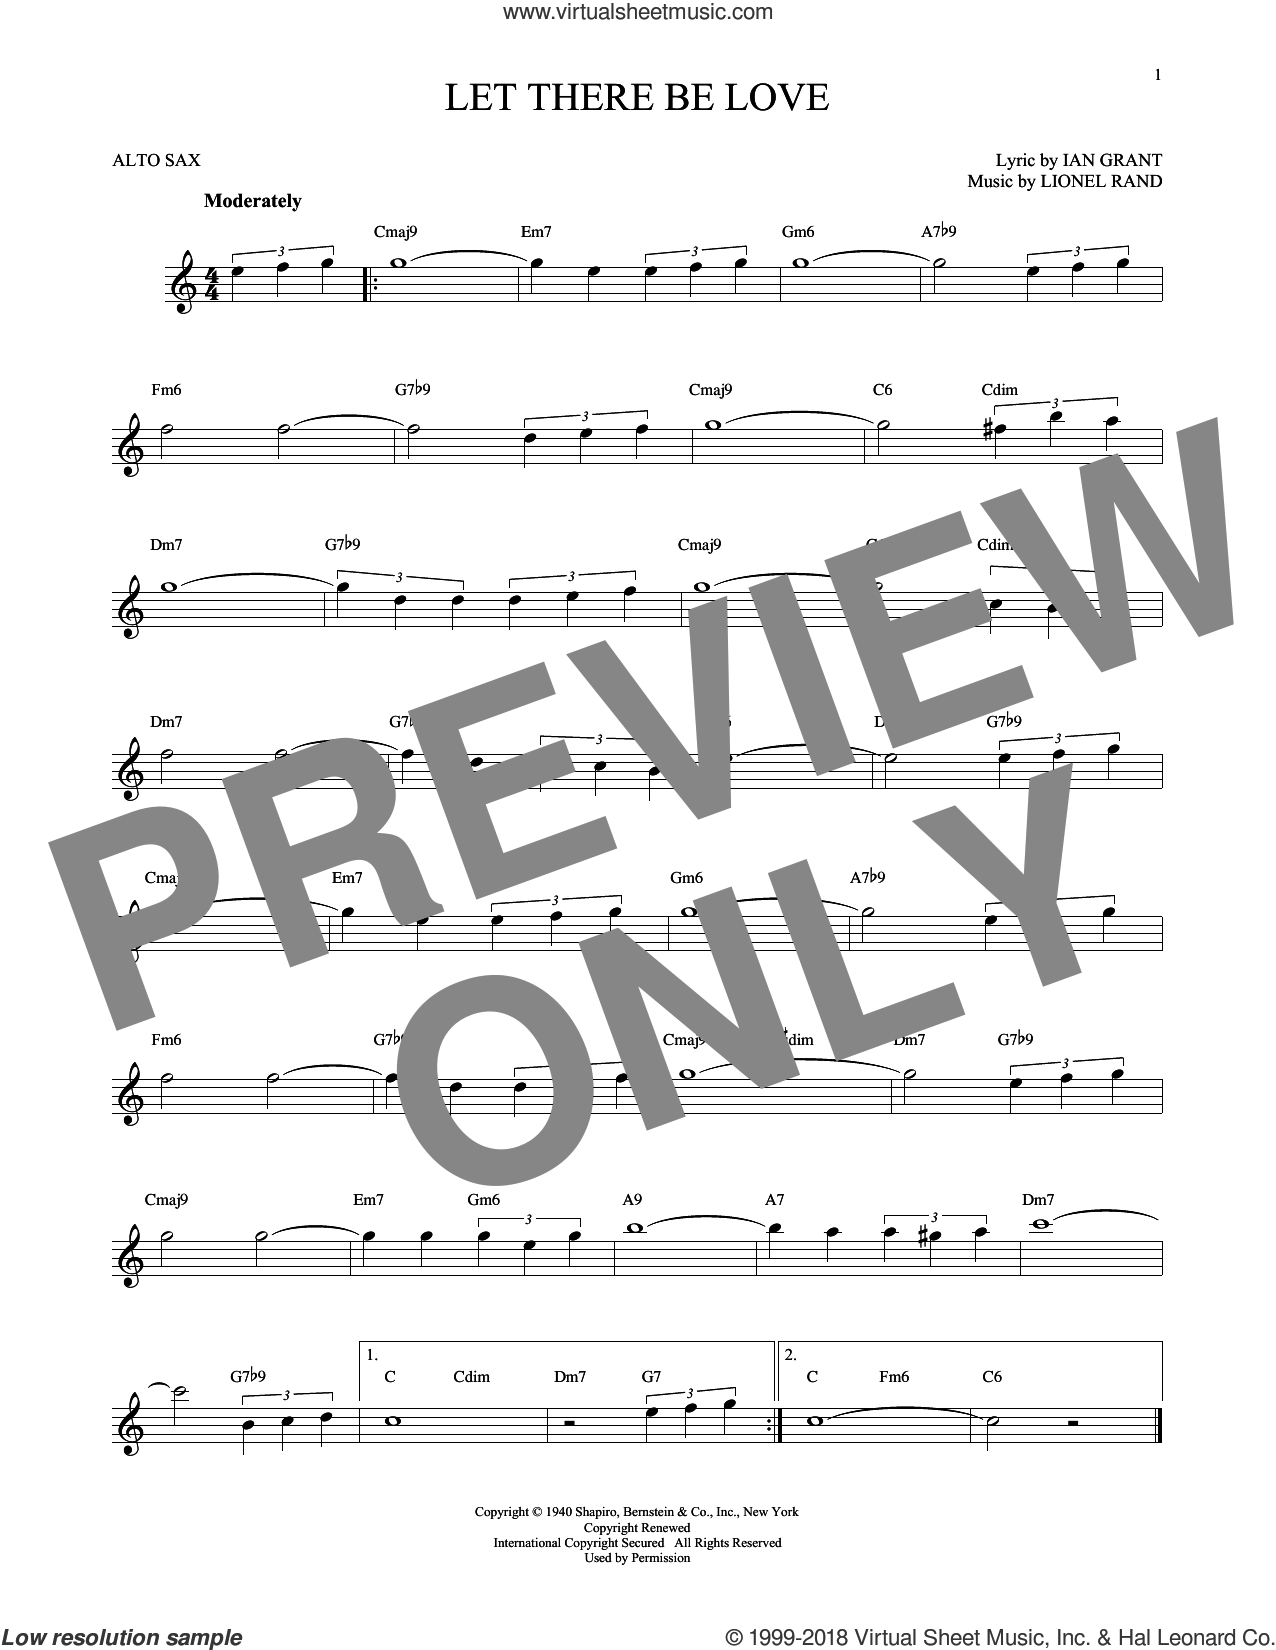 Let There Be Love sheet music for alto saxophone solo by Ian Grant and Lionel Rand. Score Image Preview.